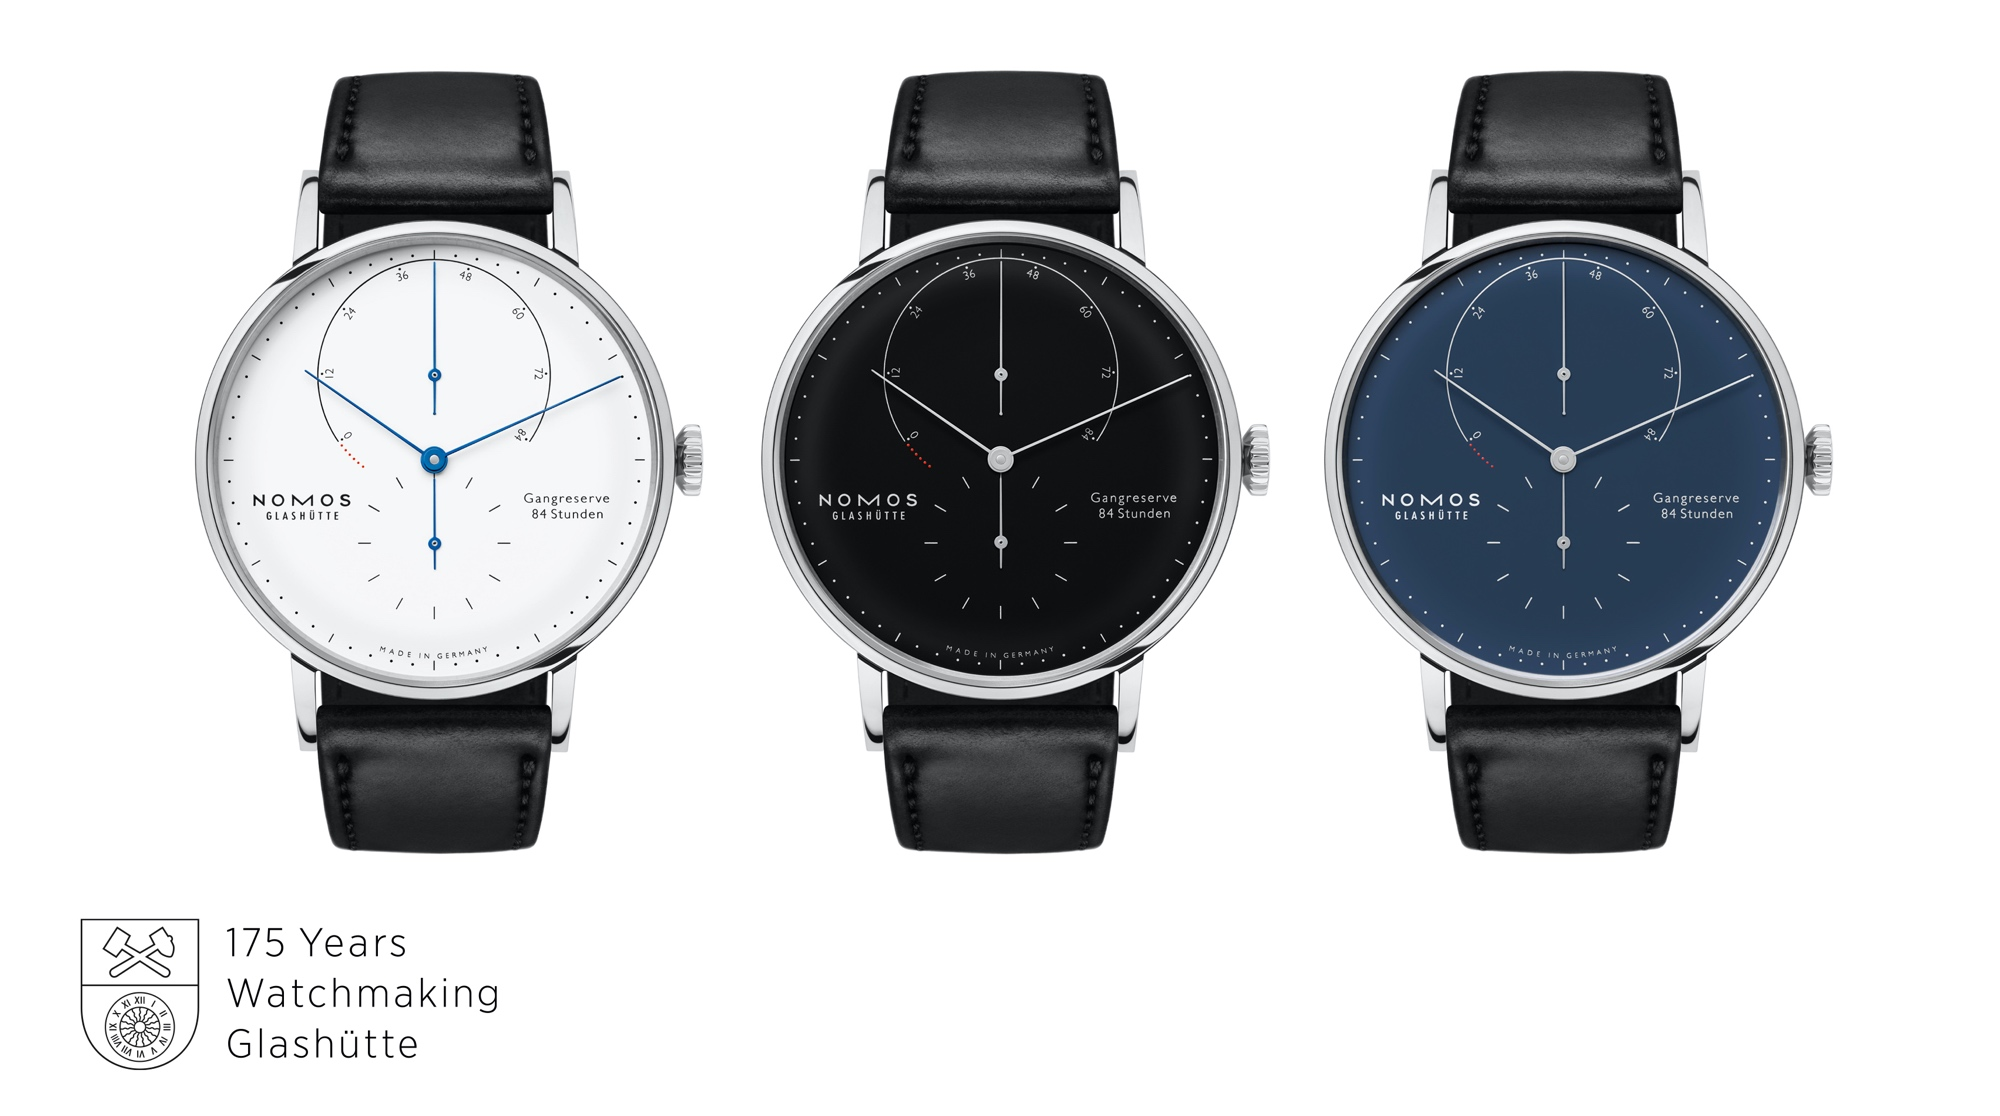 Nomos Lambda 175 Years Watchmaking Glashütte - trio sello